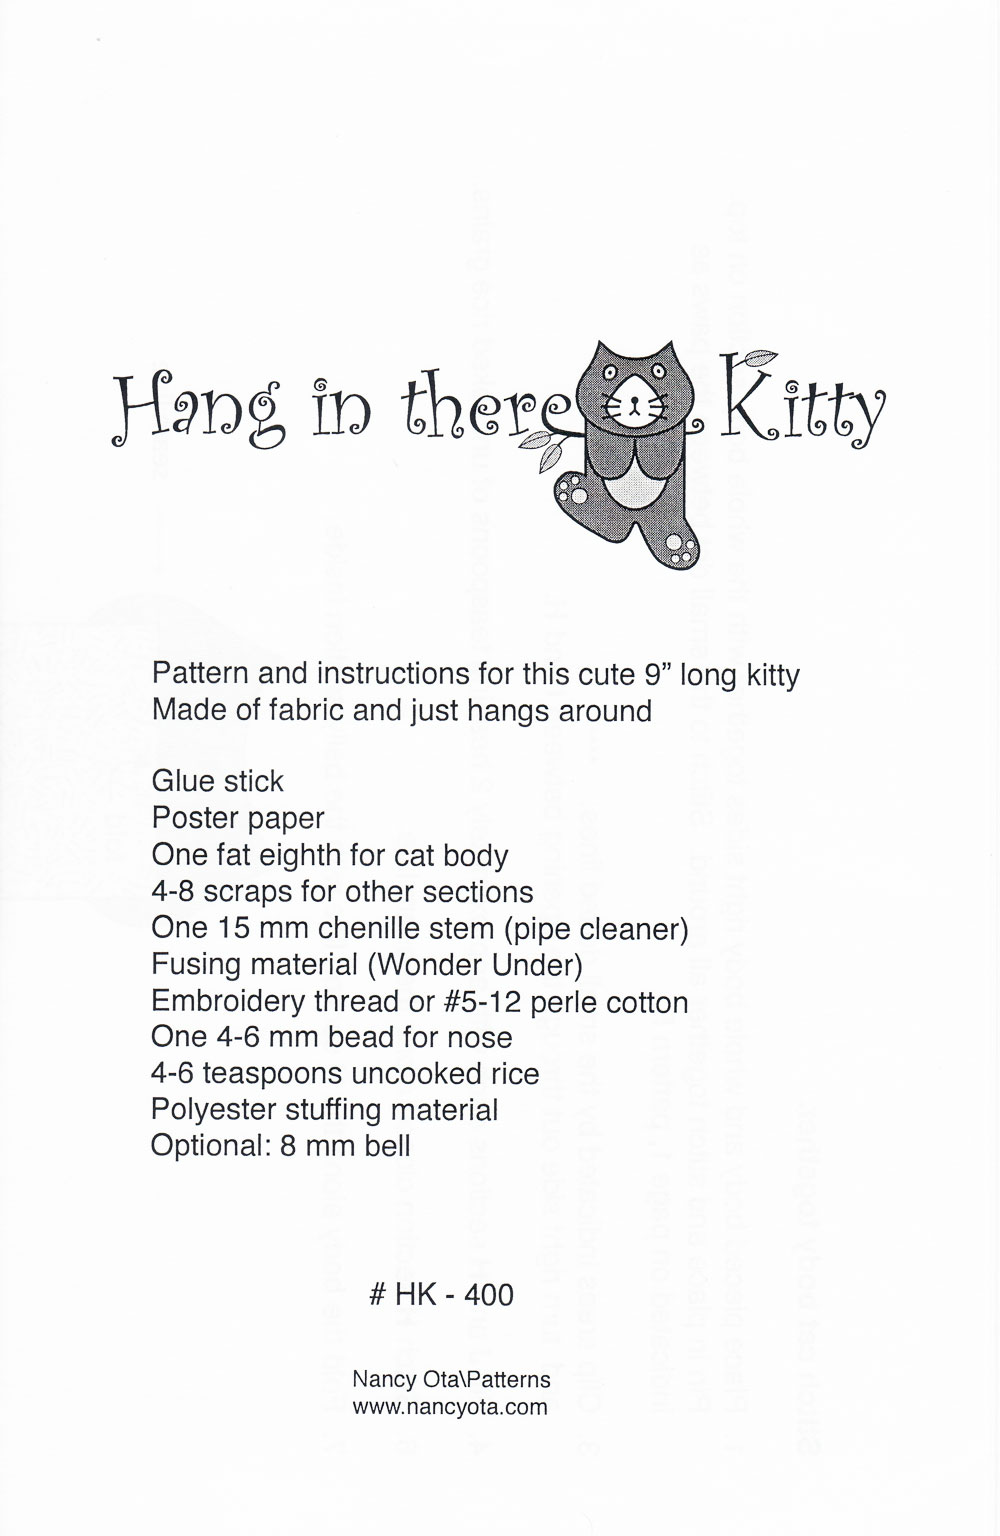 Hang-In-There-Kitty-sewing-pattern-nancy-ota-back